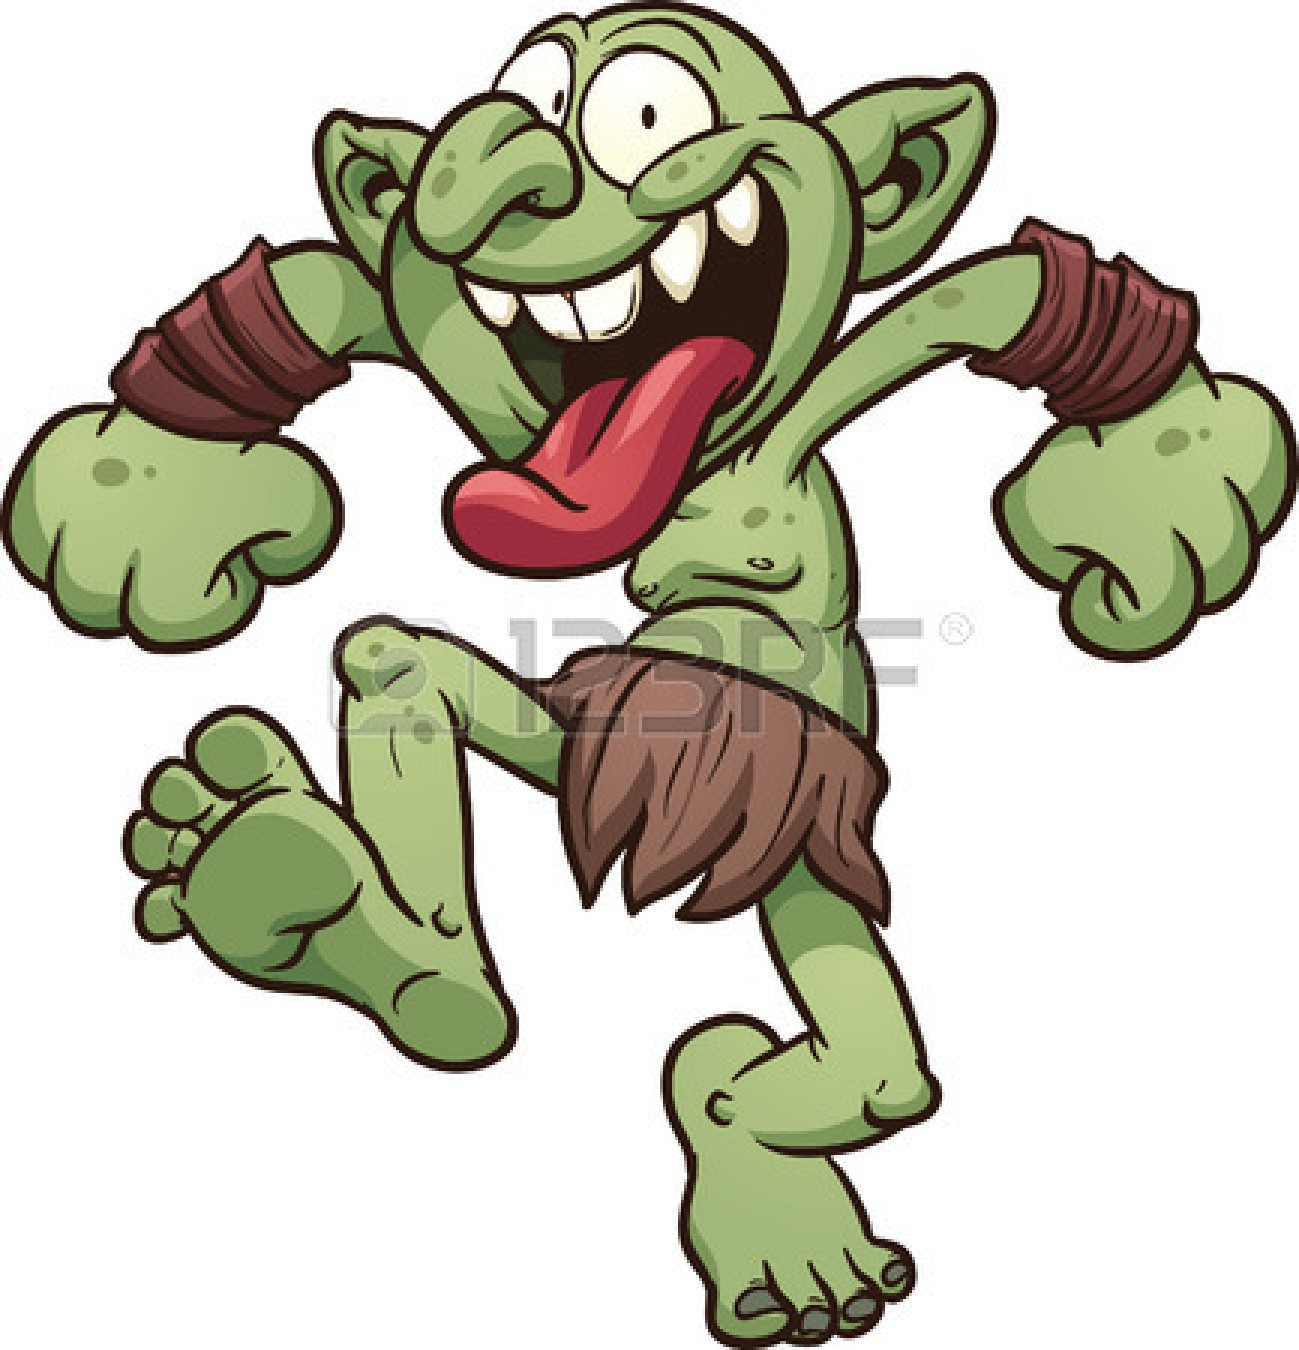 troll under bridge clipart-troll under bridge clipart-4